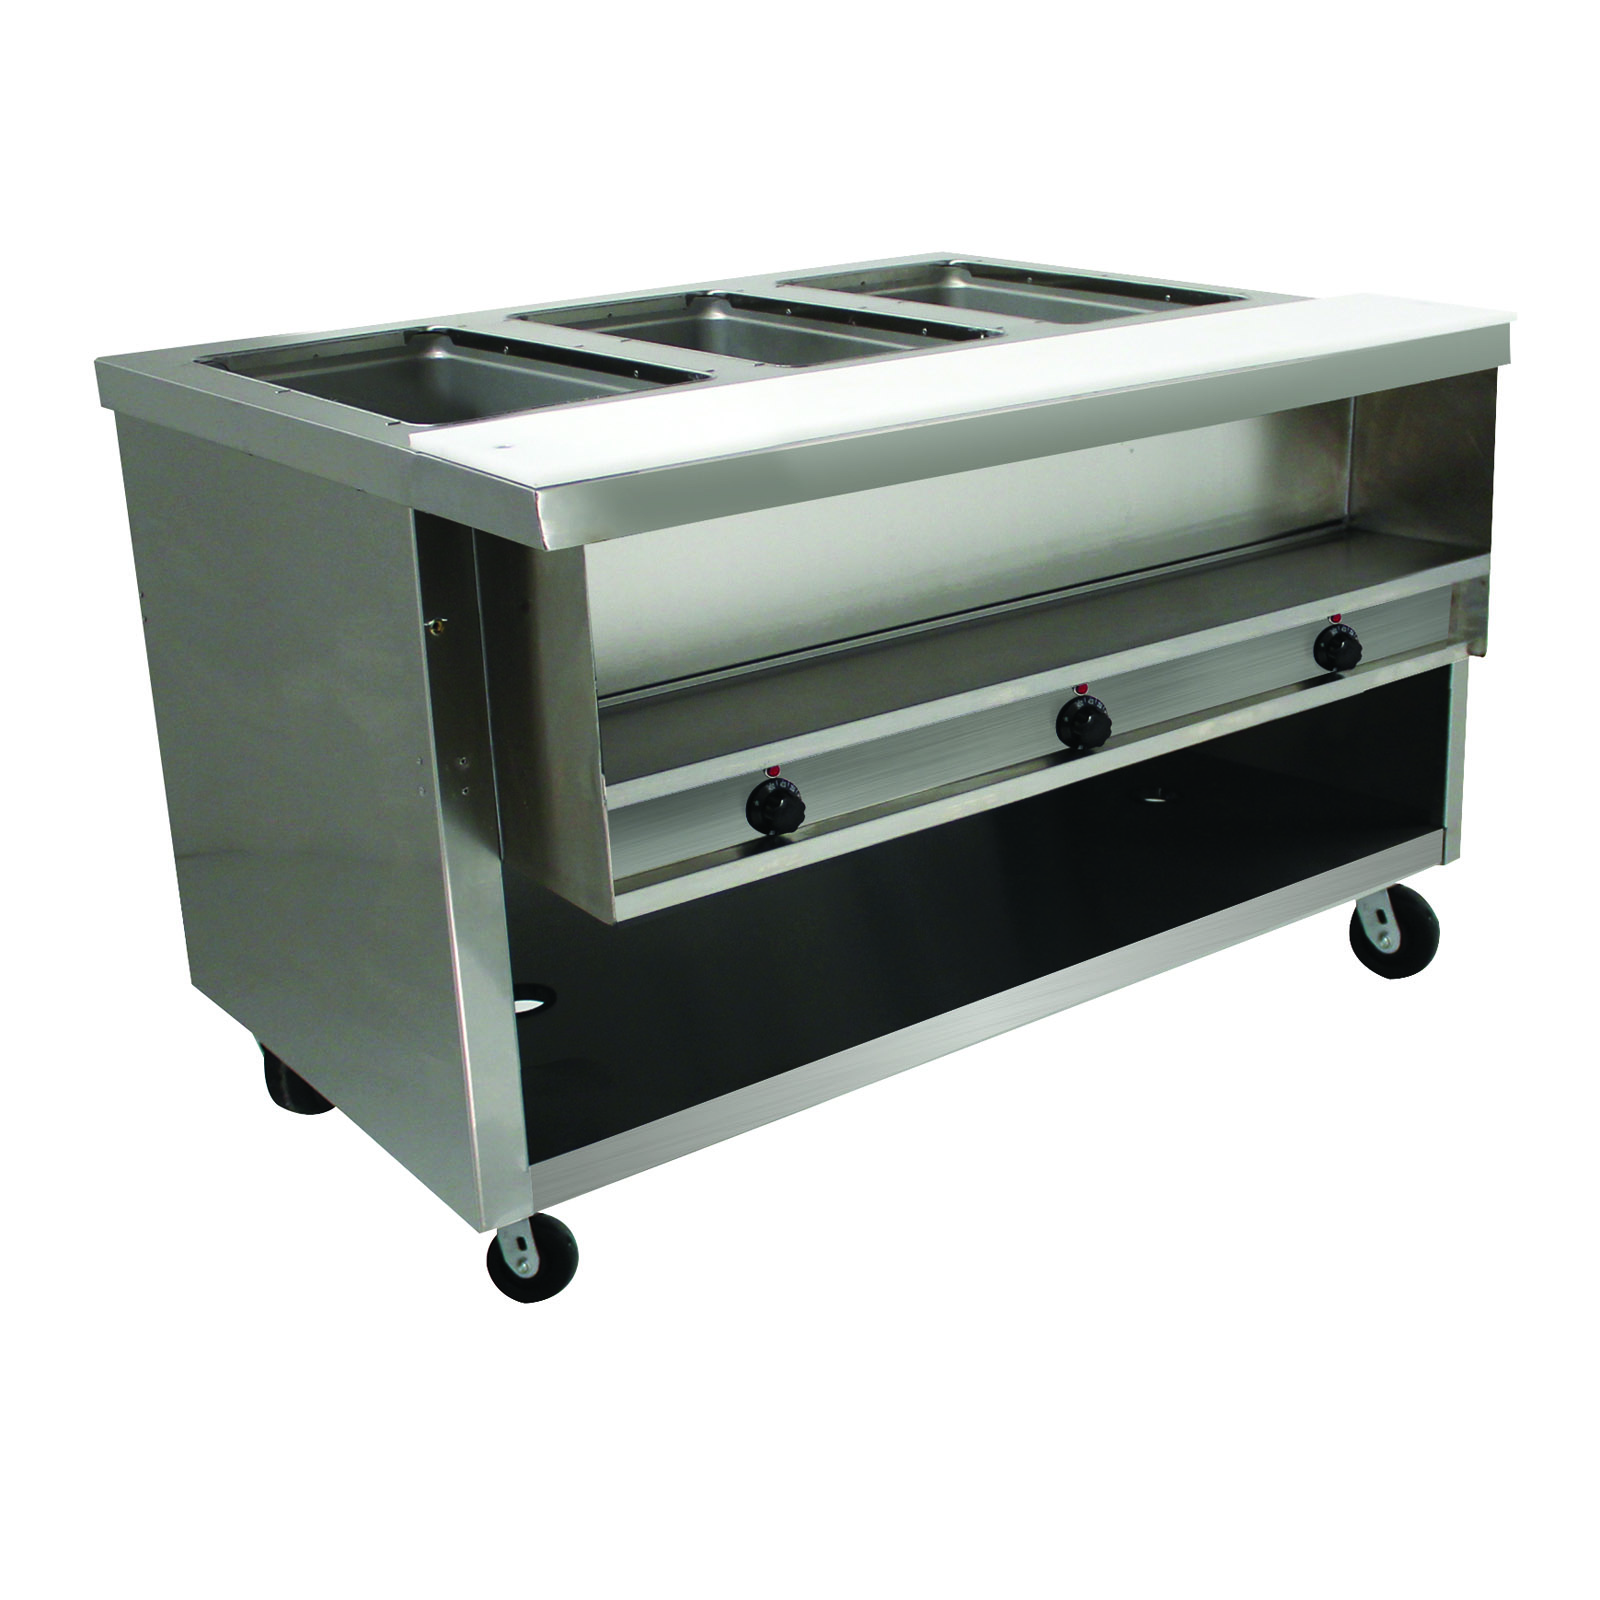 Advance Tabco HDSW-3-120-BS serving counter, hot food, electric